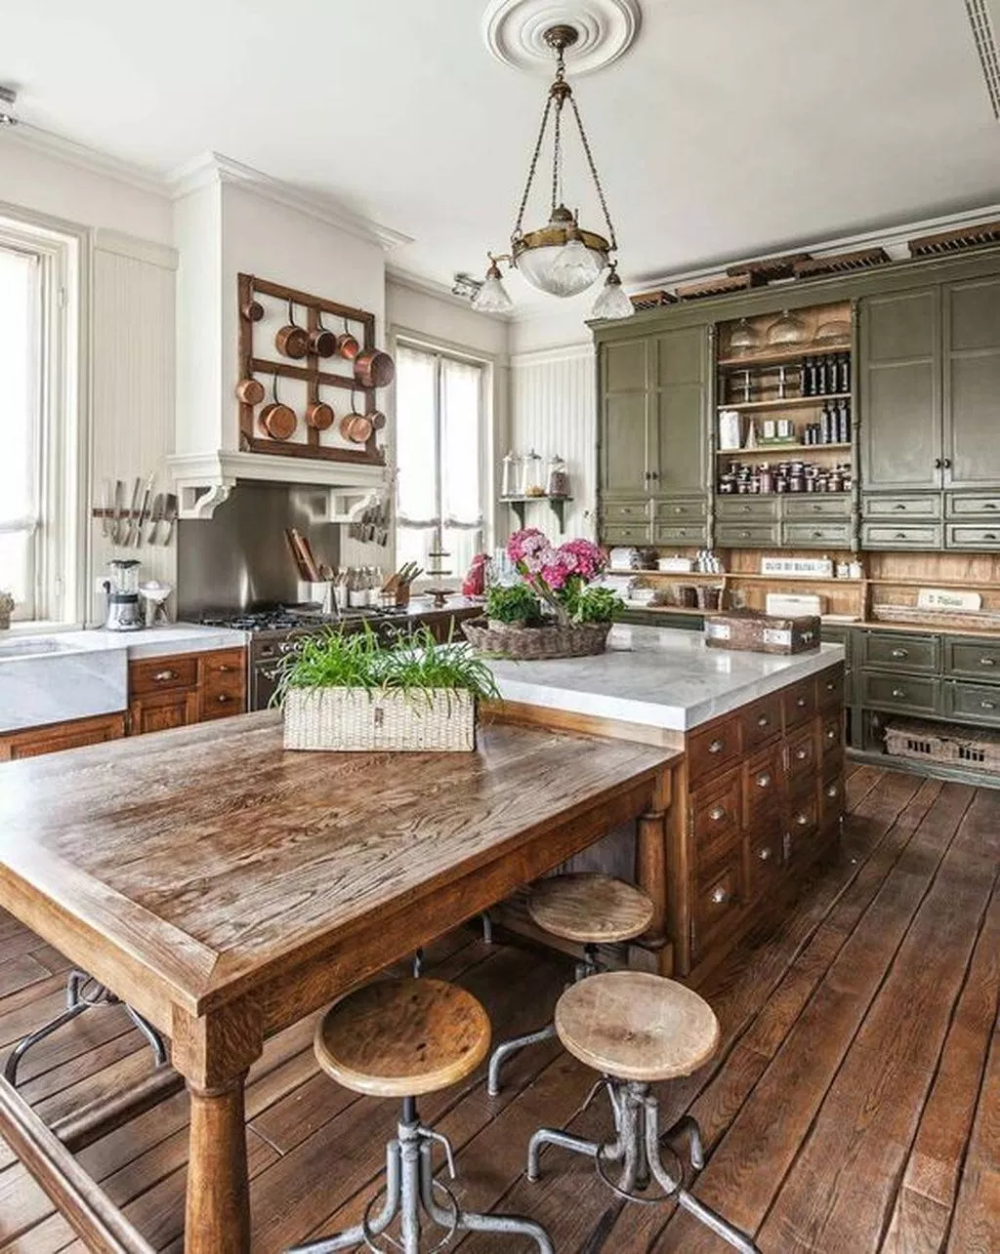 46 Inspiring Rustic Country Kitchen Ideas To Renew Your Ordinary Kitchen - Trendehouse #countrykitchens